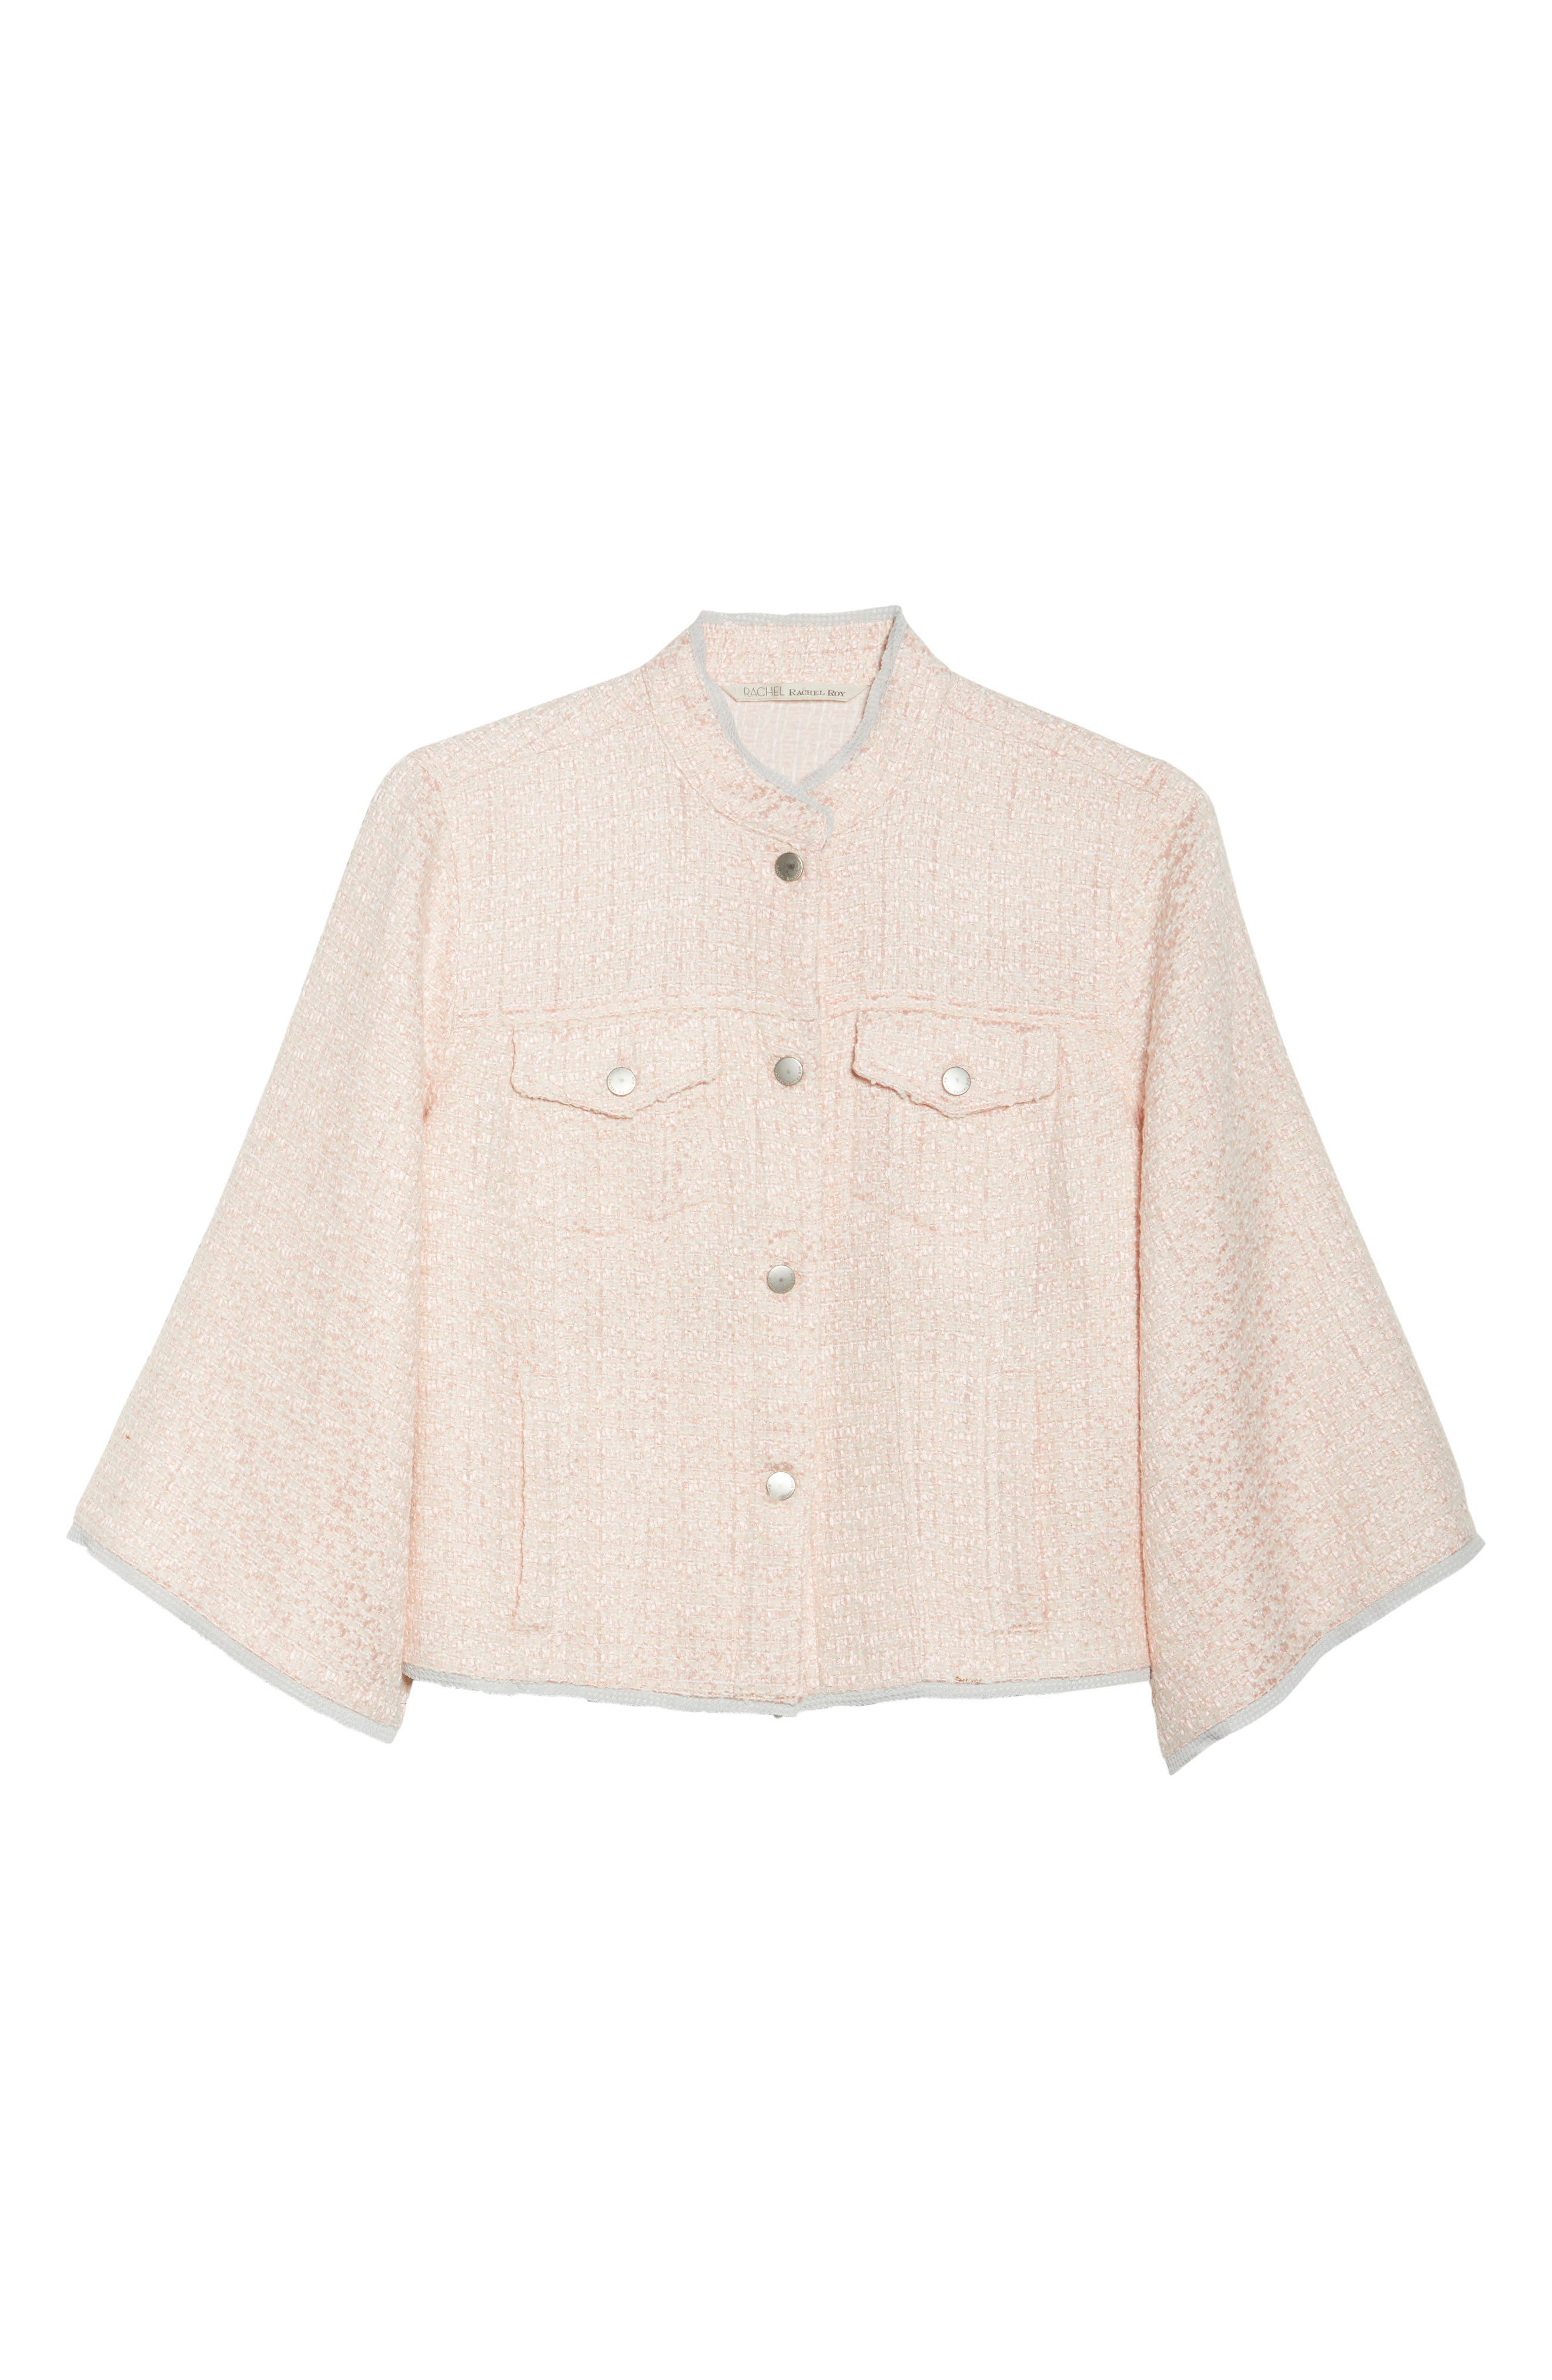 Bell Sleeve Crop Tweed Jacket,                             Alternate thumbnail 7, color,                             Ice Pink Combo